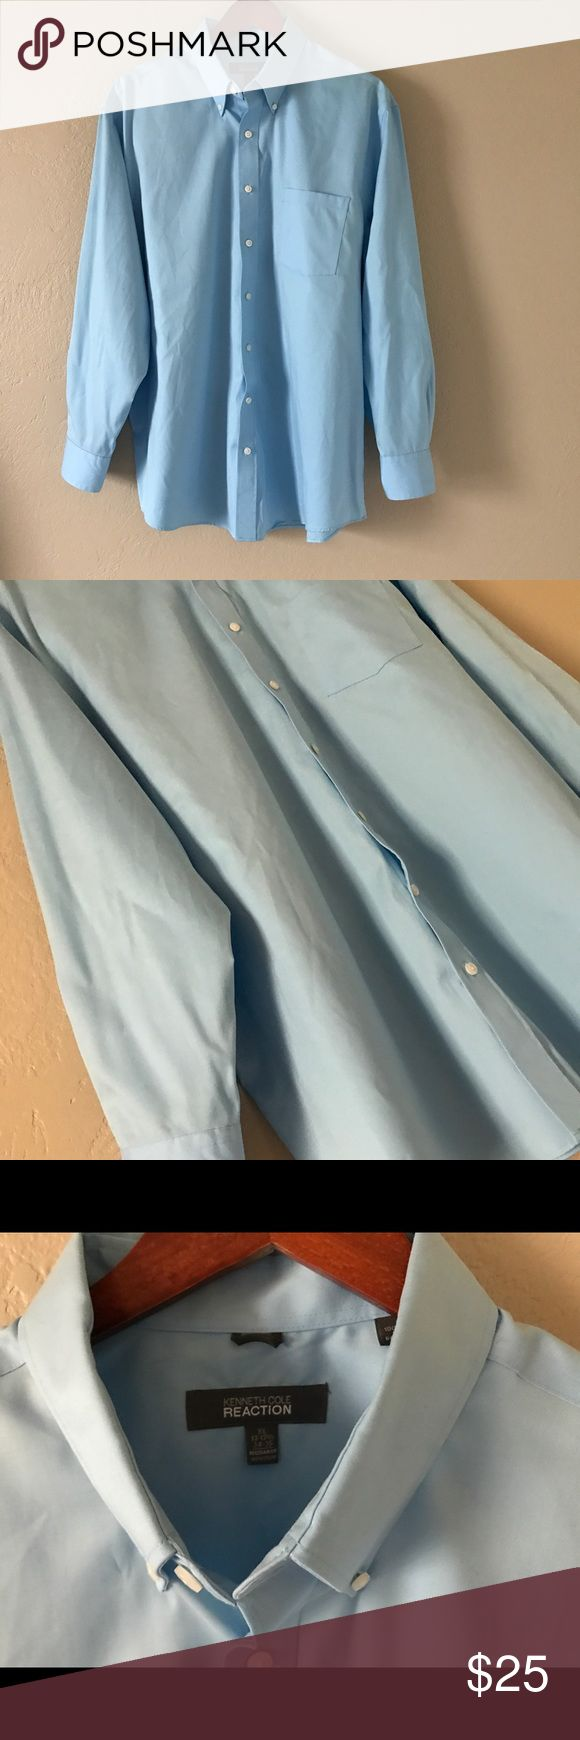 Kenneth Cole Reaction Non Iron Dress Shirt • XL Kenneth Cole Reaction Non Iron Dress Shirt • XL - 17-17 1/2, 34-35 - Regular Fit - wrinkle free design, just hang it up and wrinkles will fall right out - excellent condition - nice, light fabric - great light blue color will go with everything! Kenneth Cole Reaction Shirts Dress Shirts